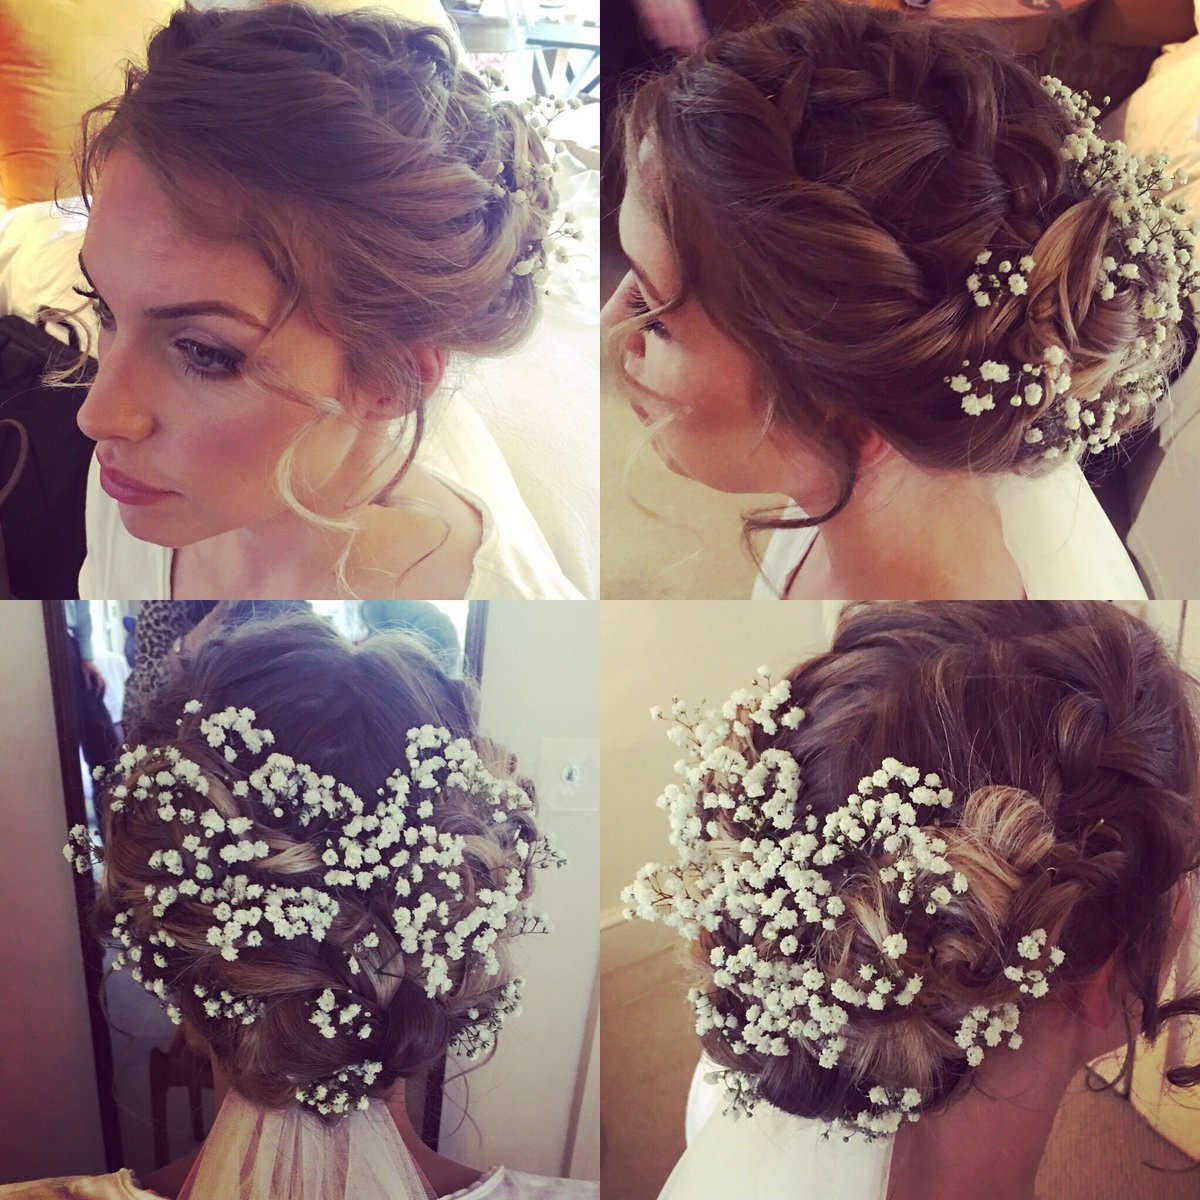 laura richards (@lrweddinghair) | twitter